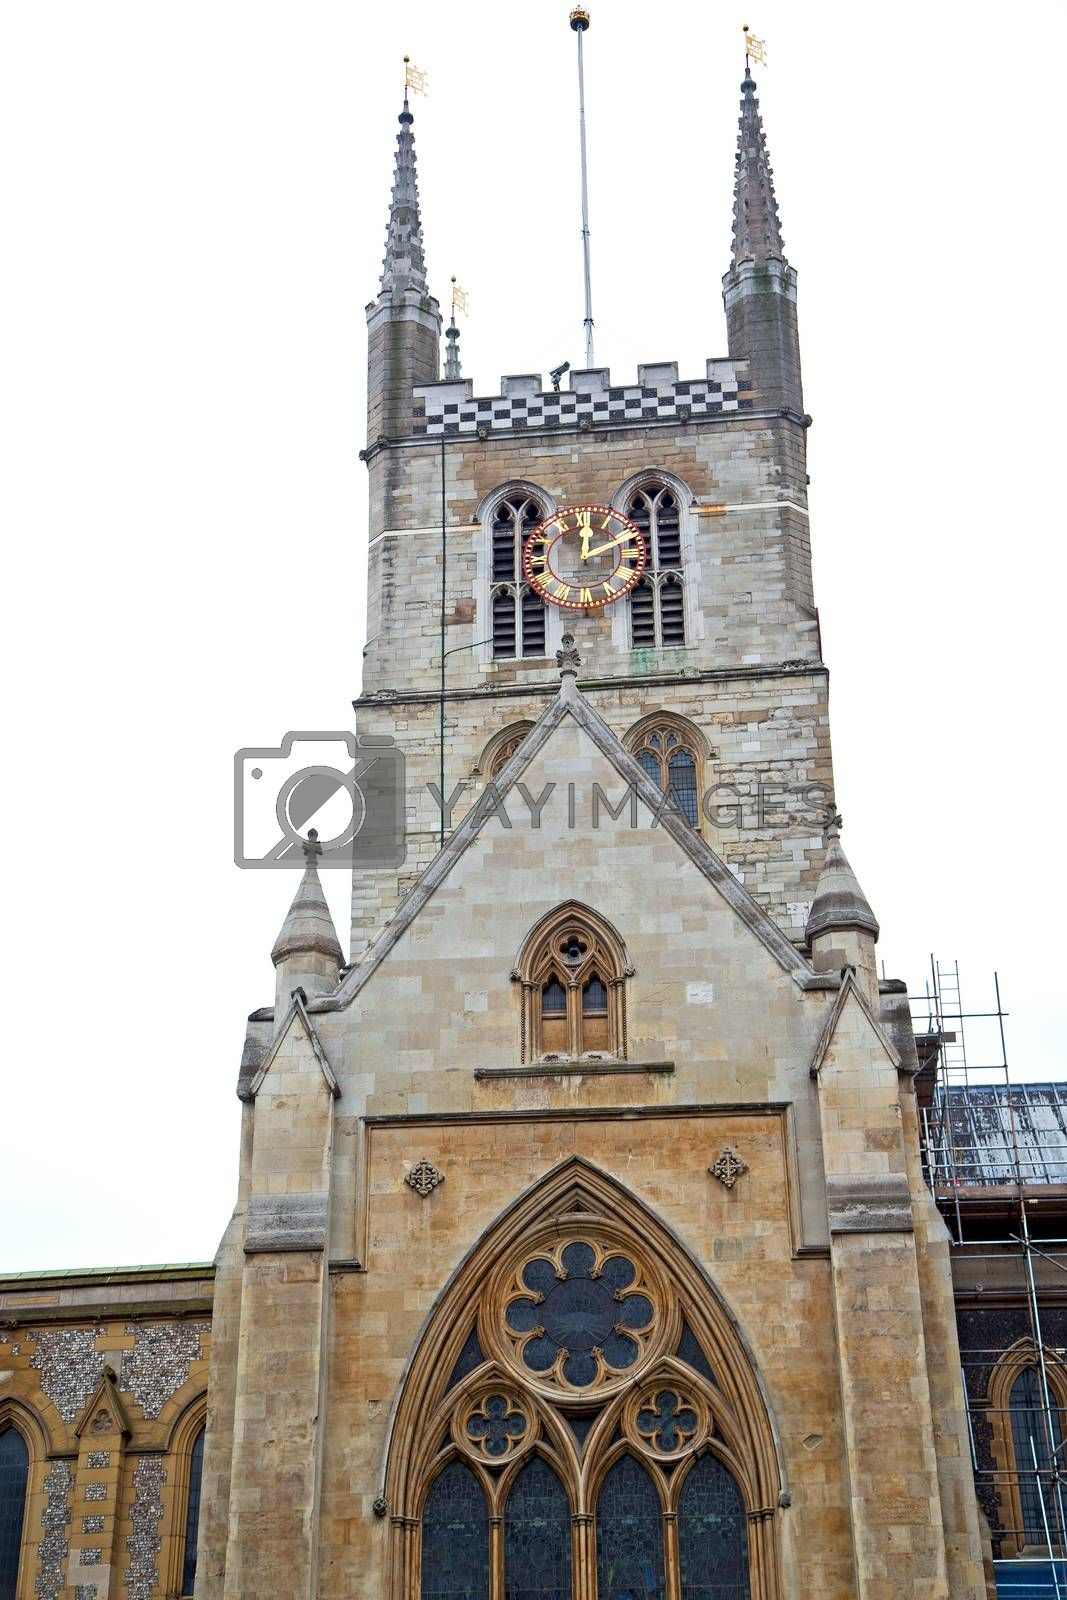 southwark  in london england old  construction  religion by lkpro